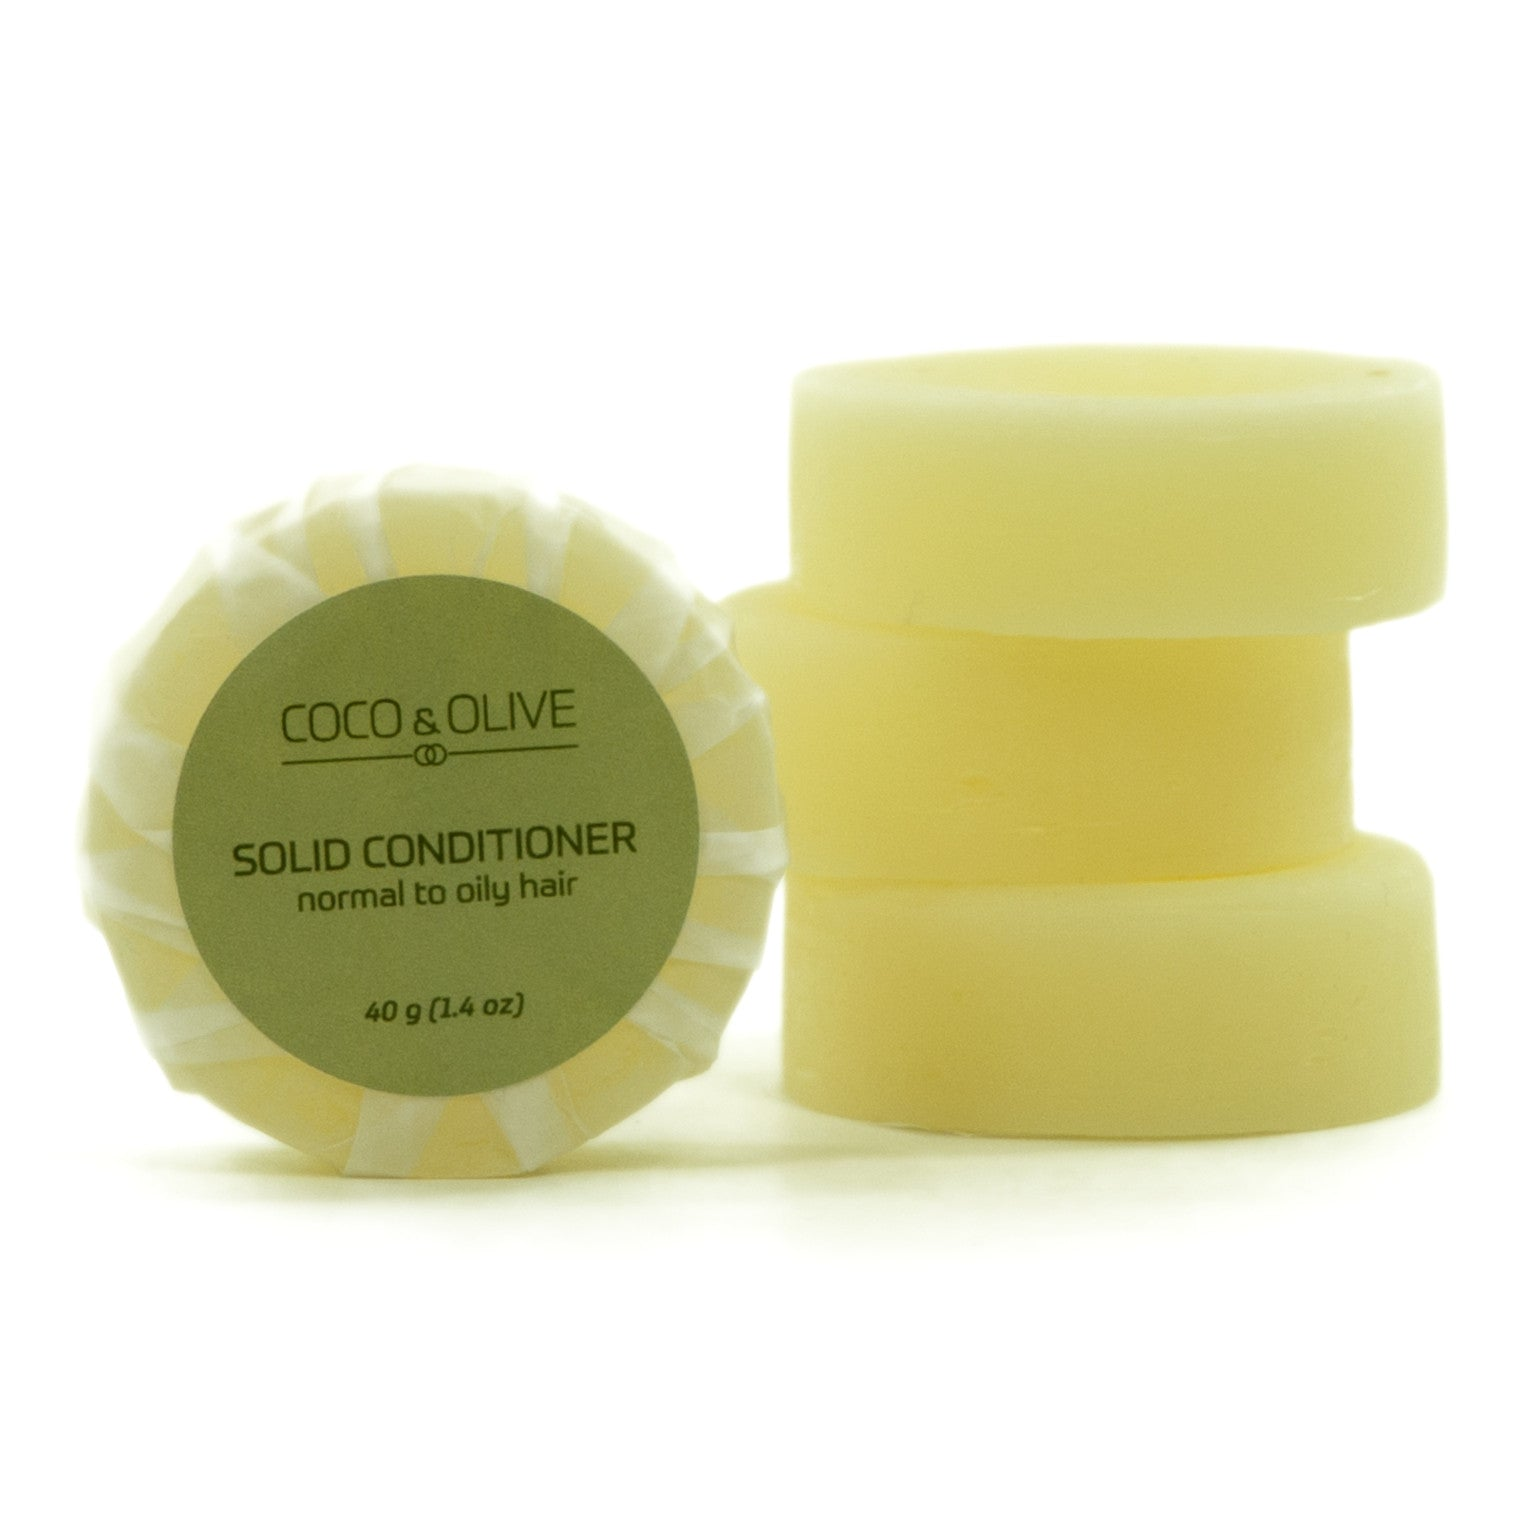 Coco & Olive Solid Conditioner Refill Normal to Dry hair. Refills are packaged simply in recycled paper.